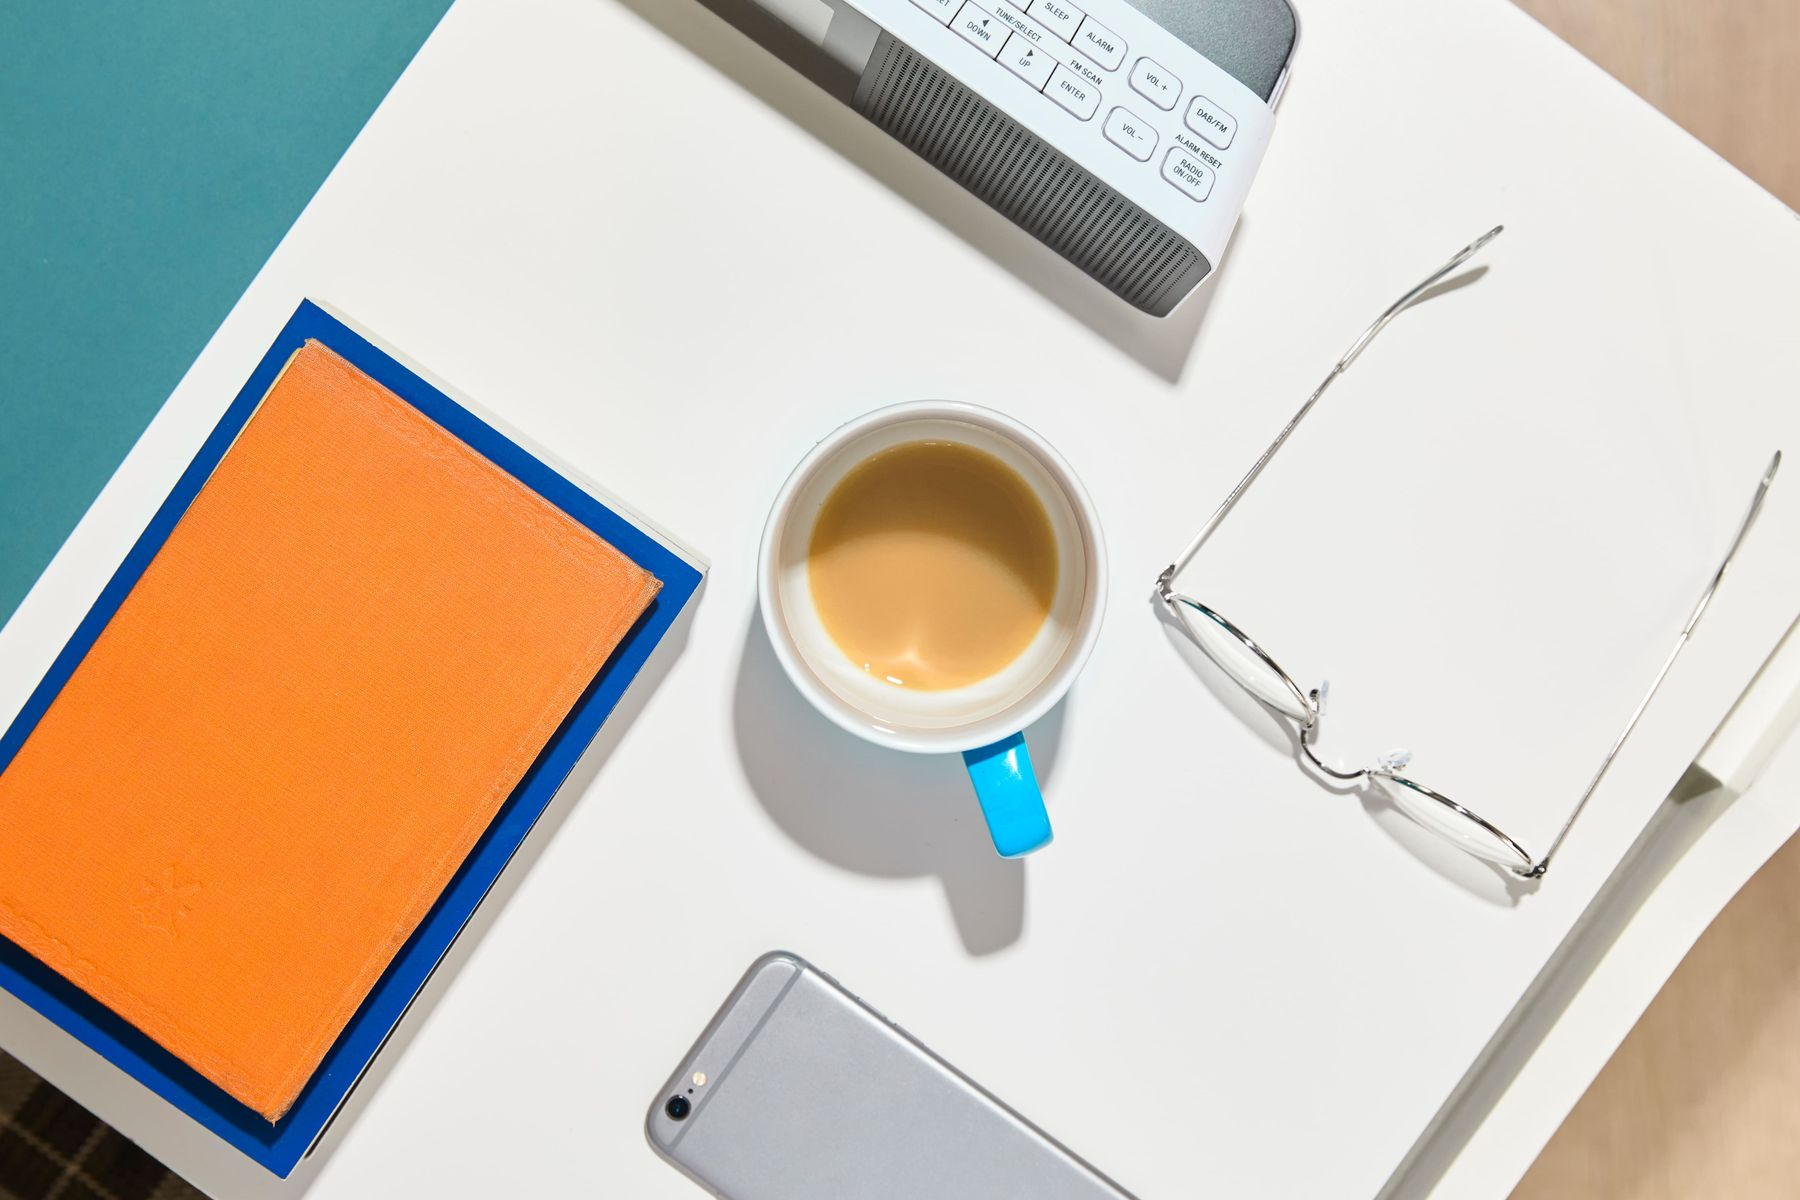 A tidy desk with glasses, a drink, papers and a mobile phone